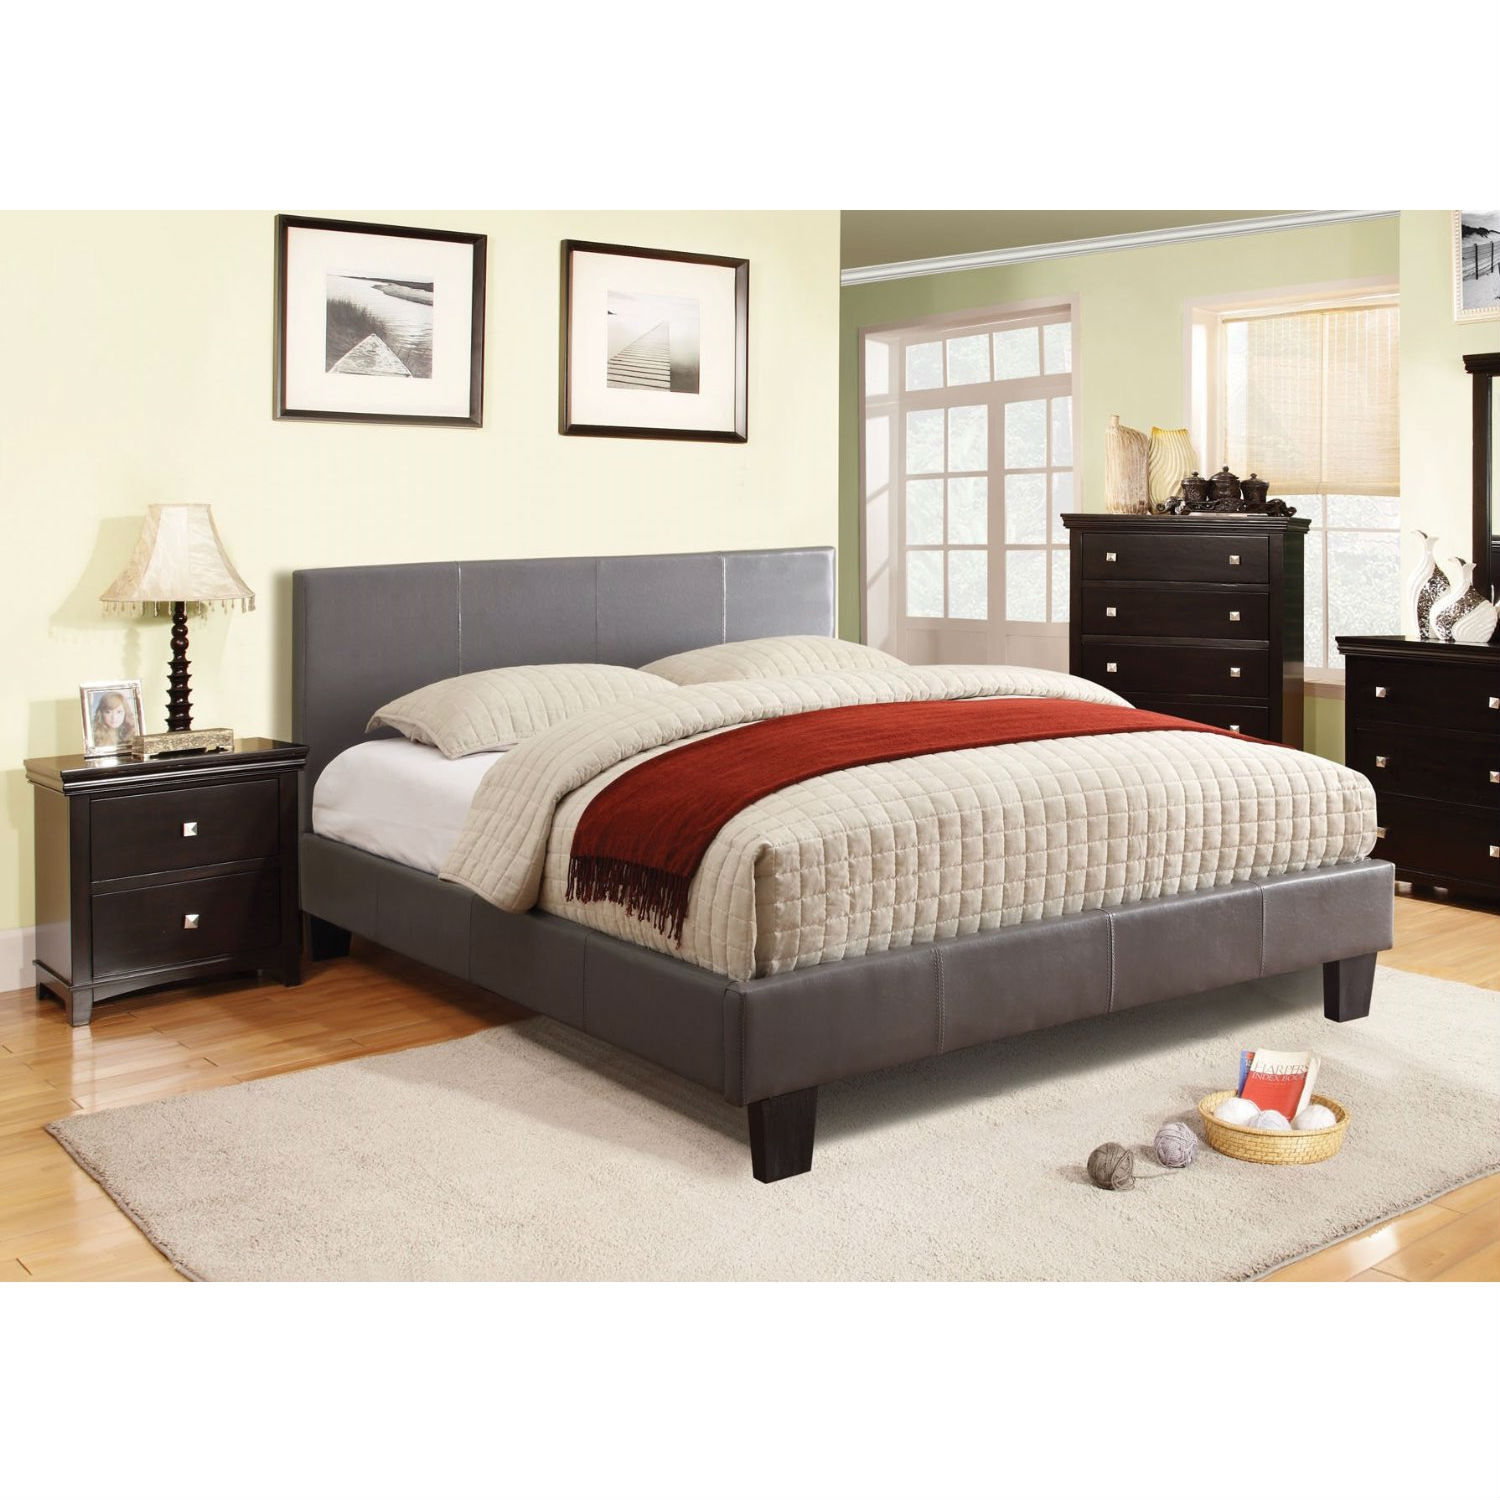 Queen Size Platform Bed With Headboard Upholstered In Gray Faux Leather Fastfurnishings Com